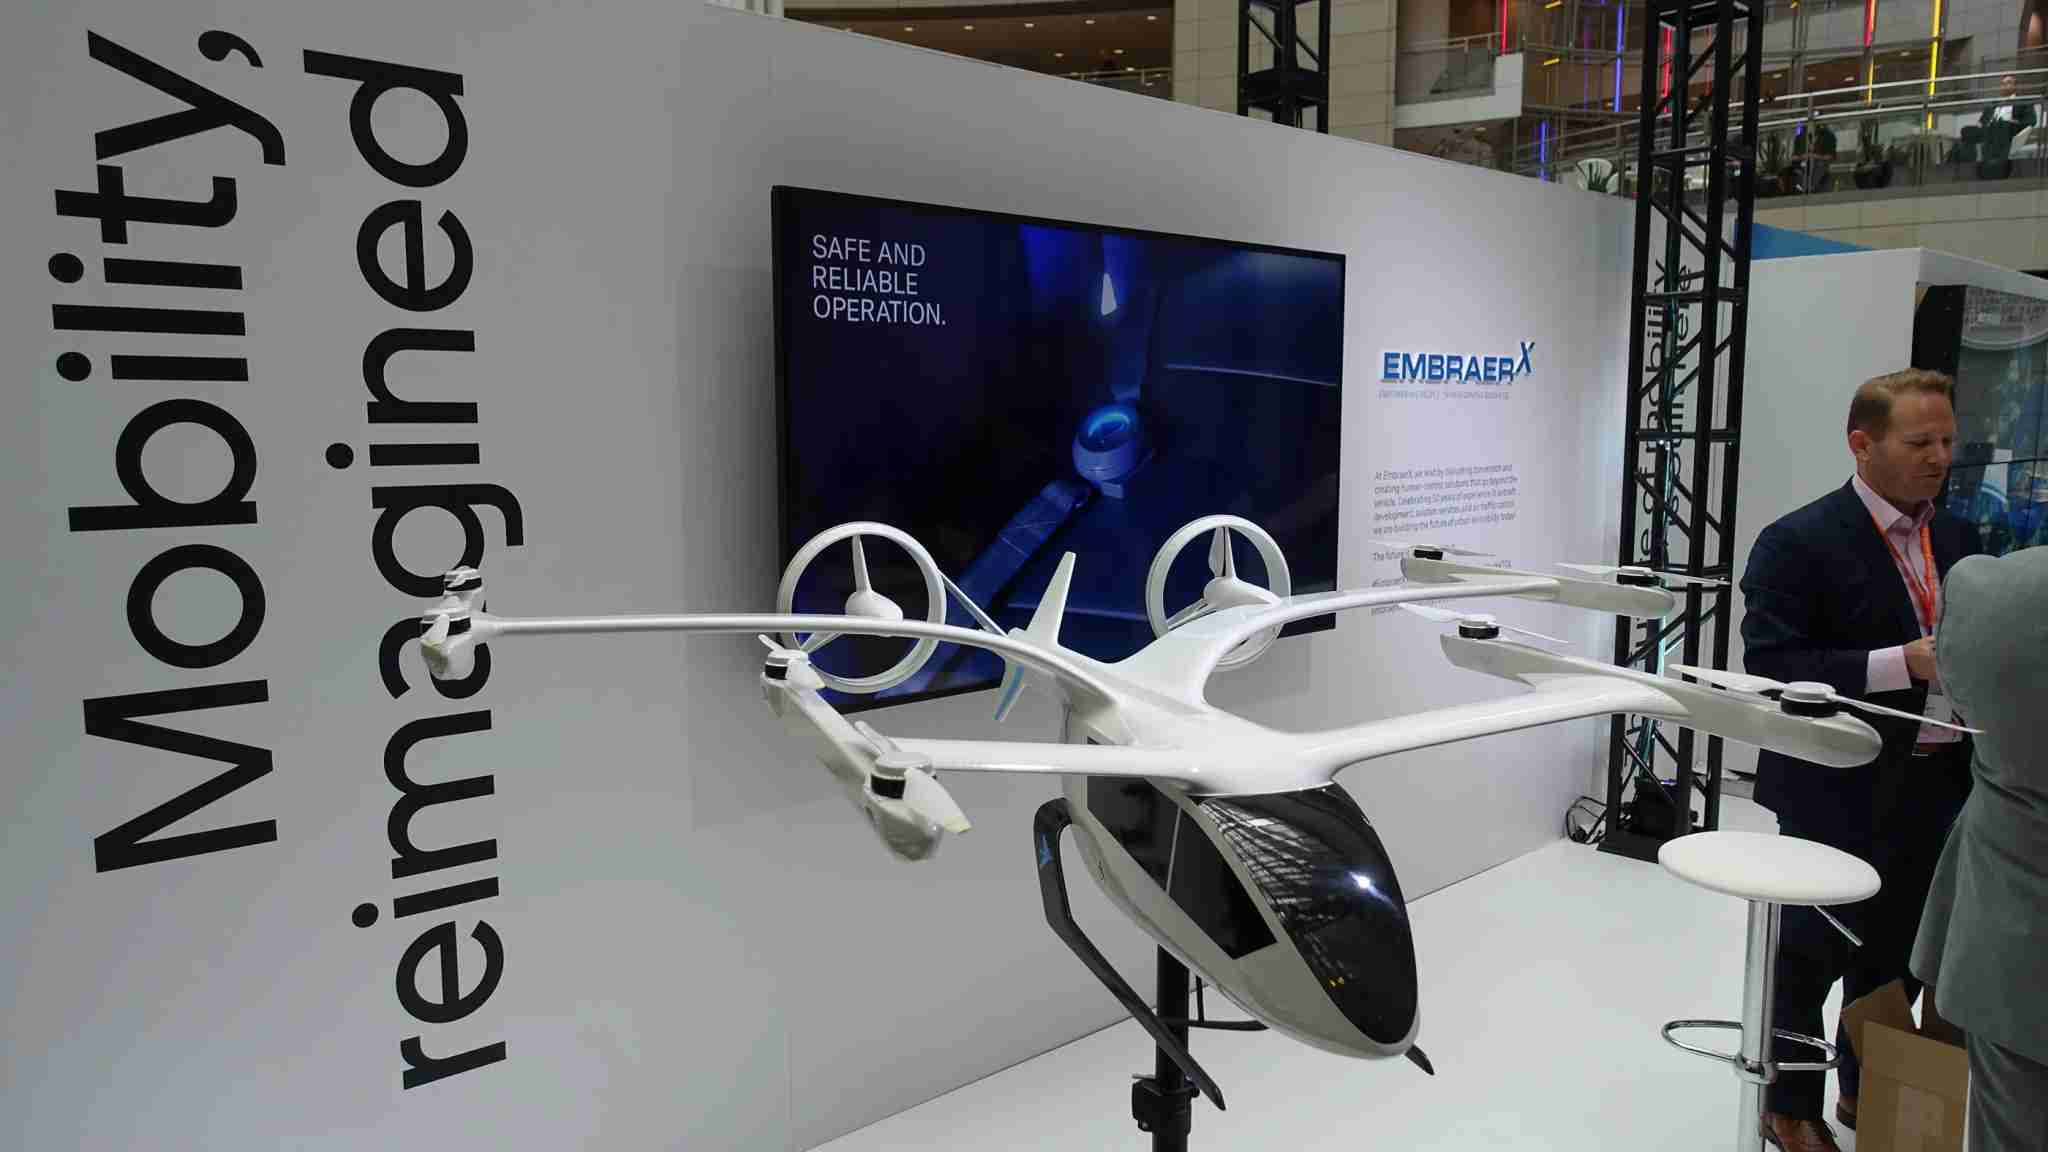 EmbraerX-flying-vehicle-concept-uber-elevate-2019_tpg_2